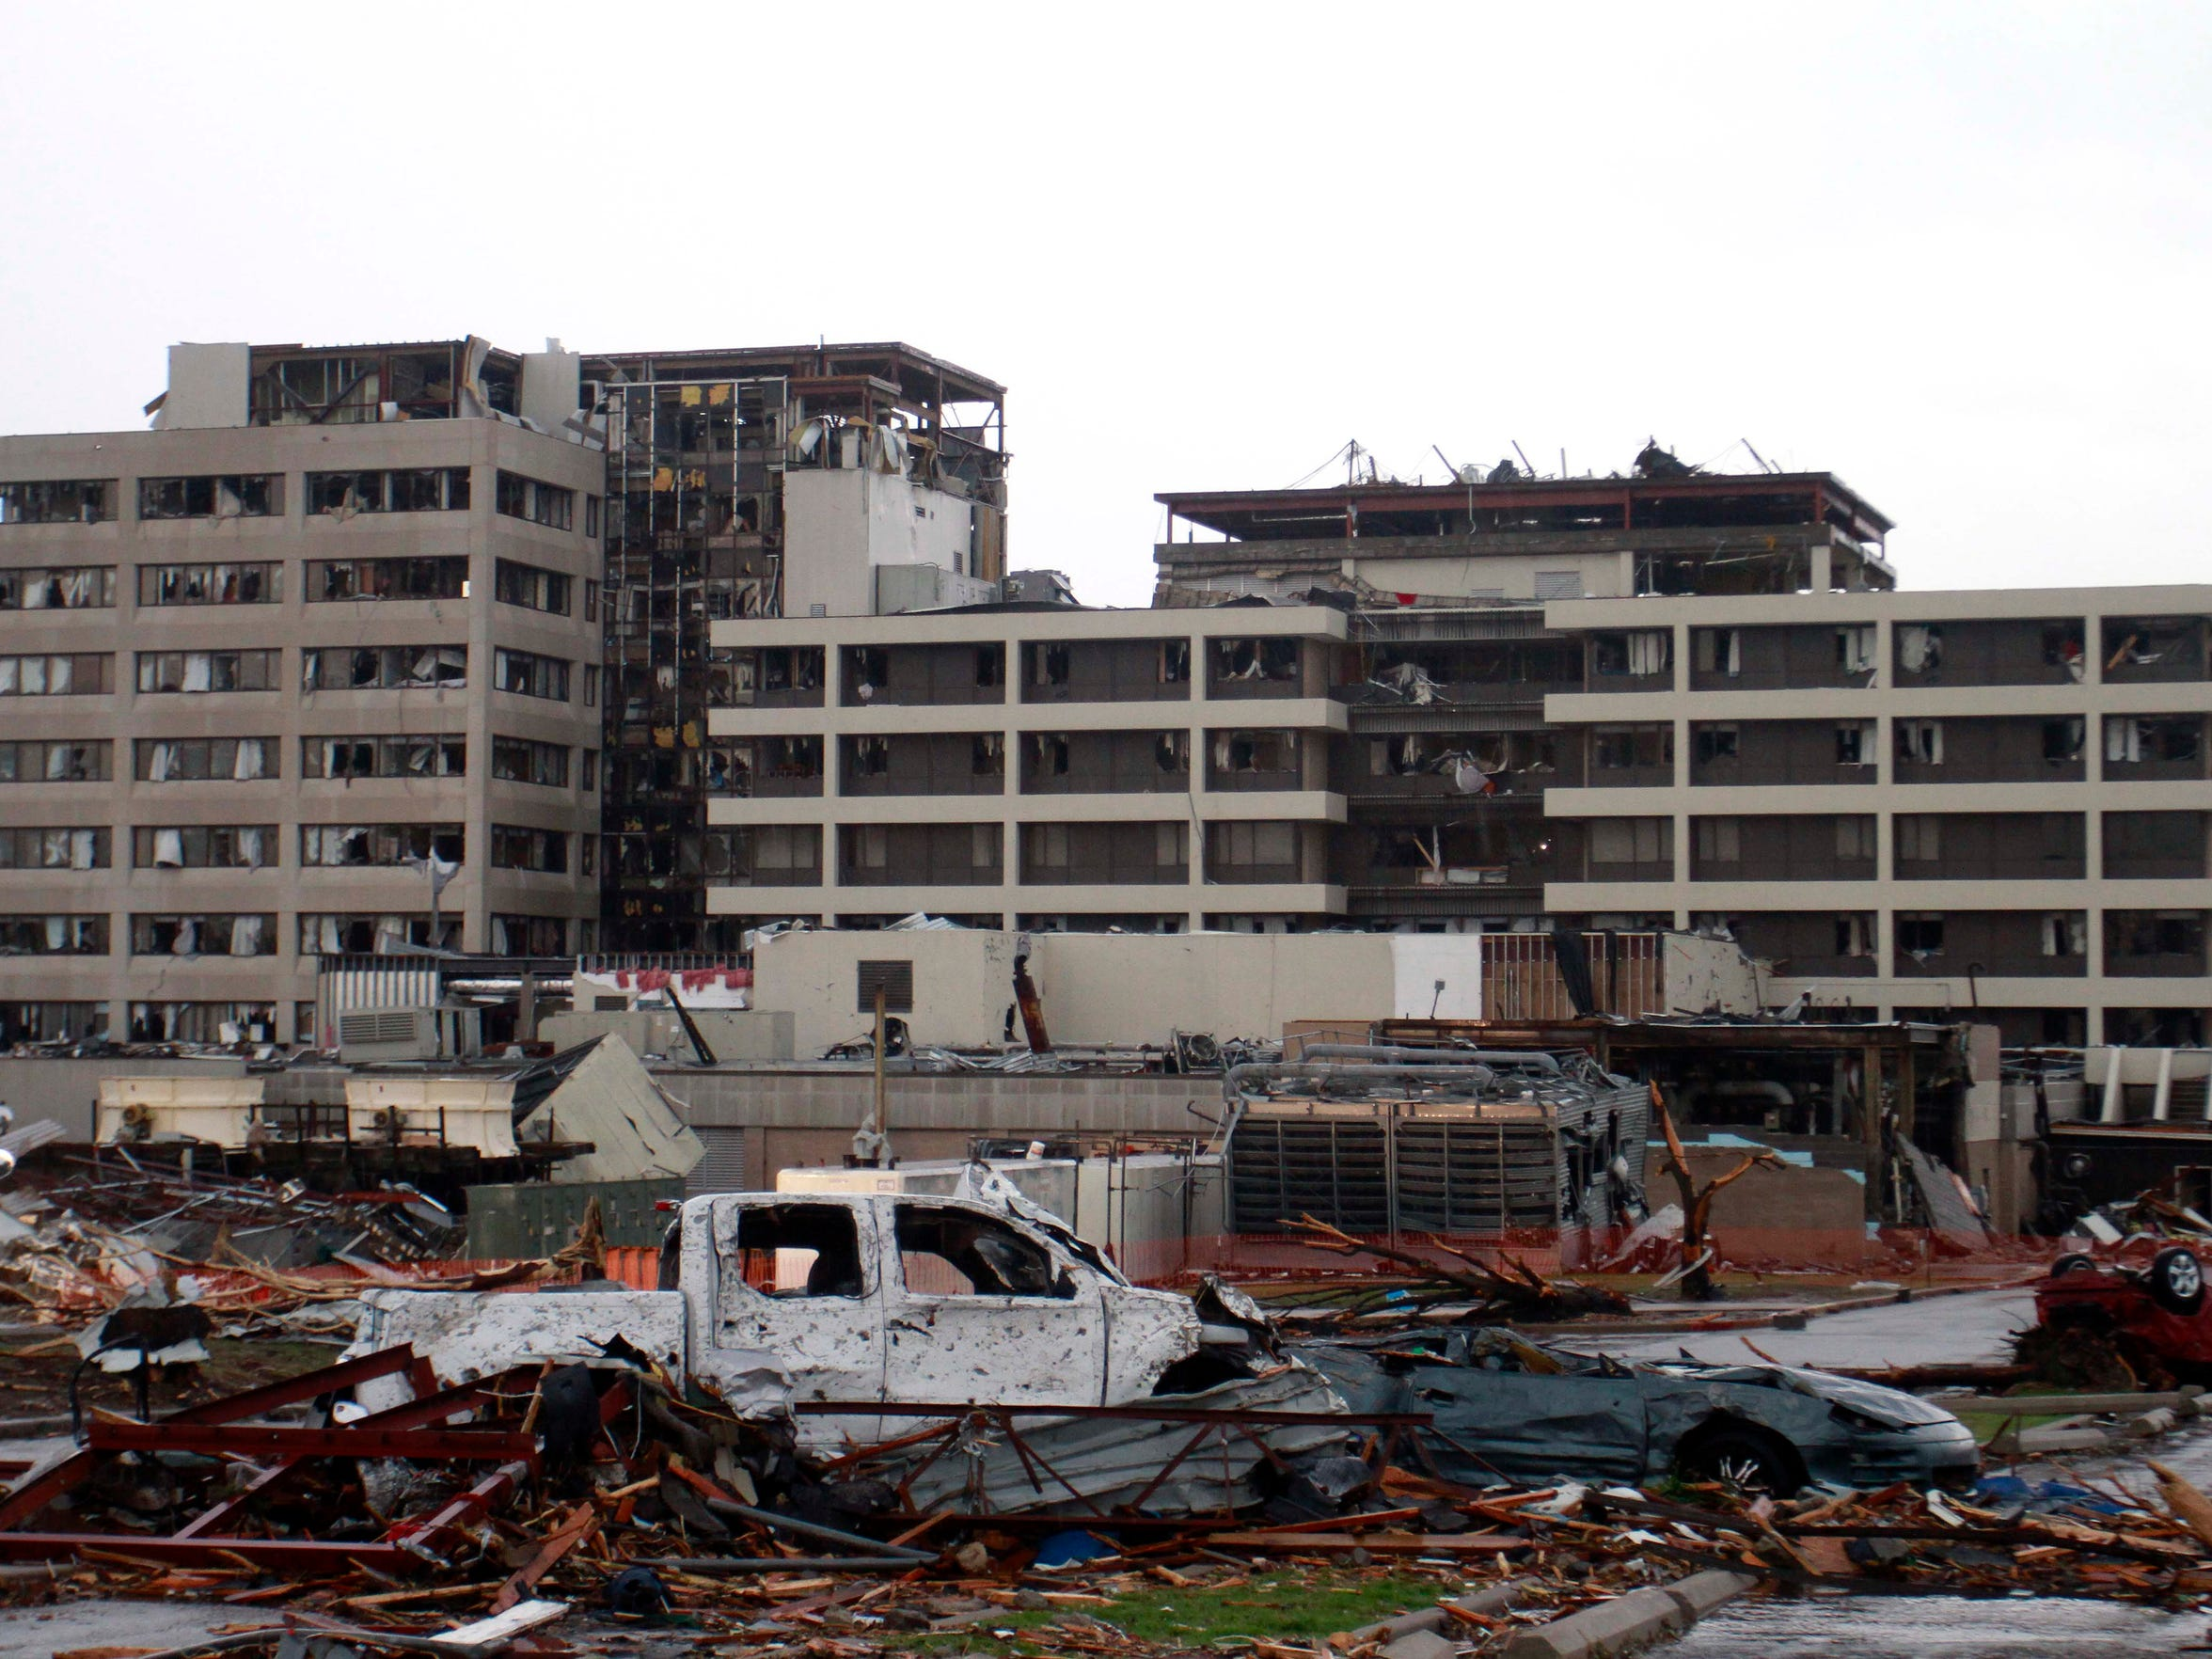 St. Johns Medical Center in Joplin was severely after a tornado ripped through Joplin, Mo causing widespread destruction and causalities. Nathan Papes/News-Leader